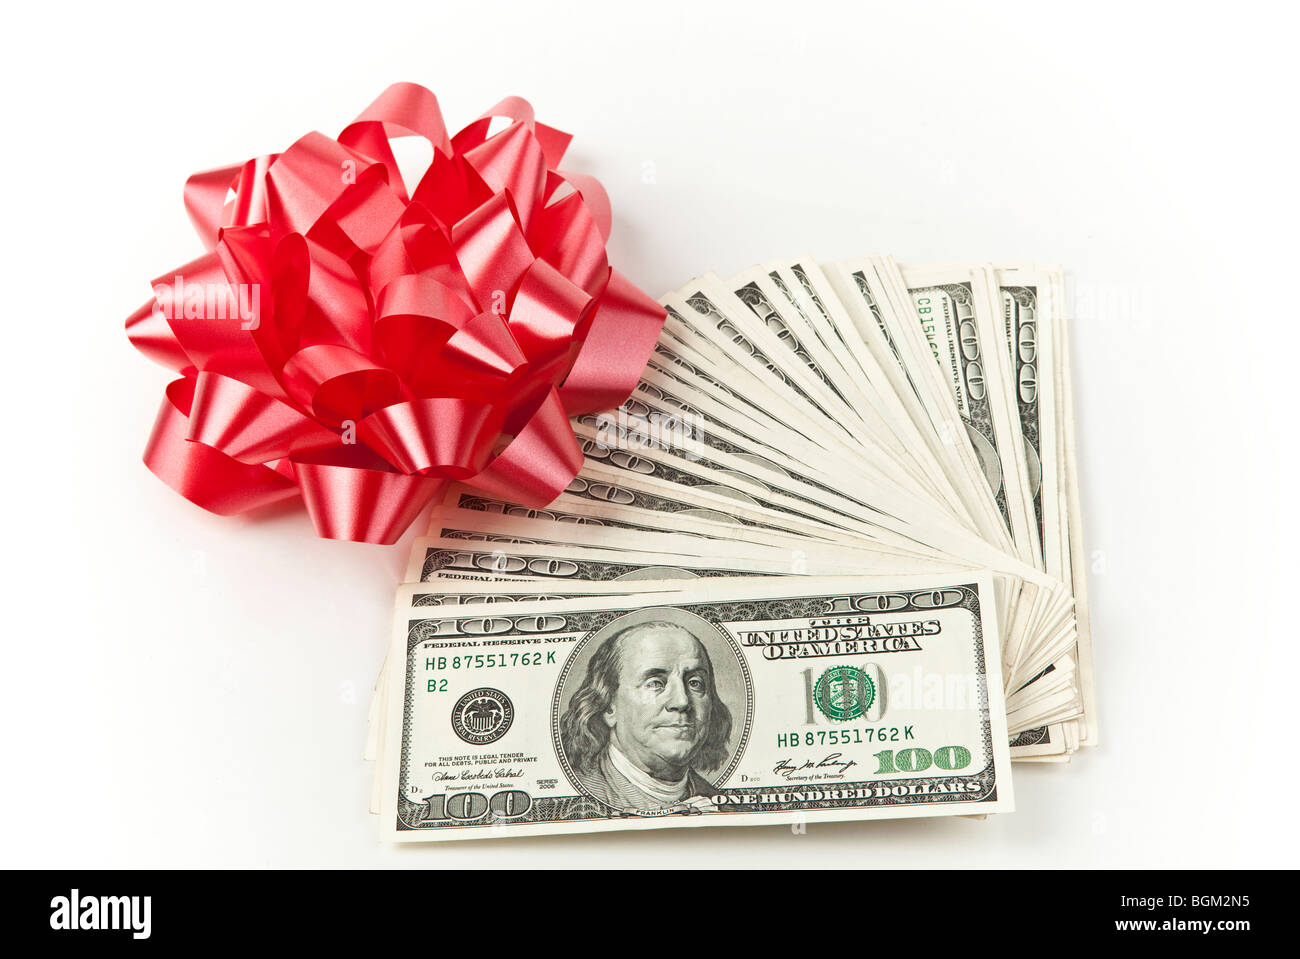 Holiday Cash money Red Bow - Stock Image